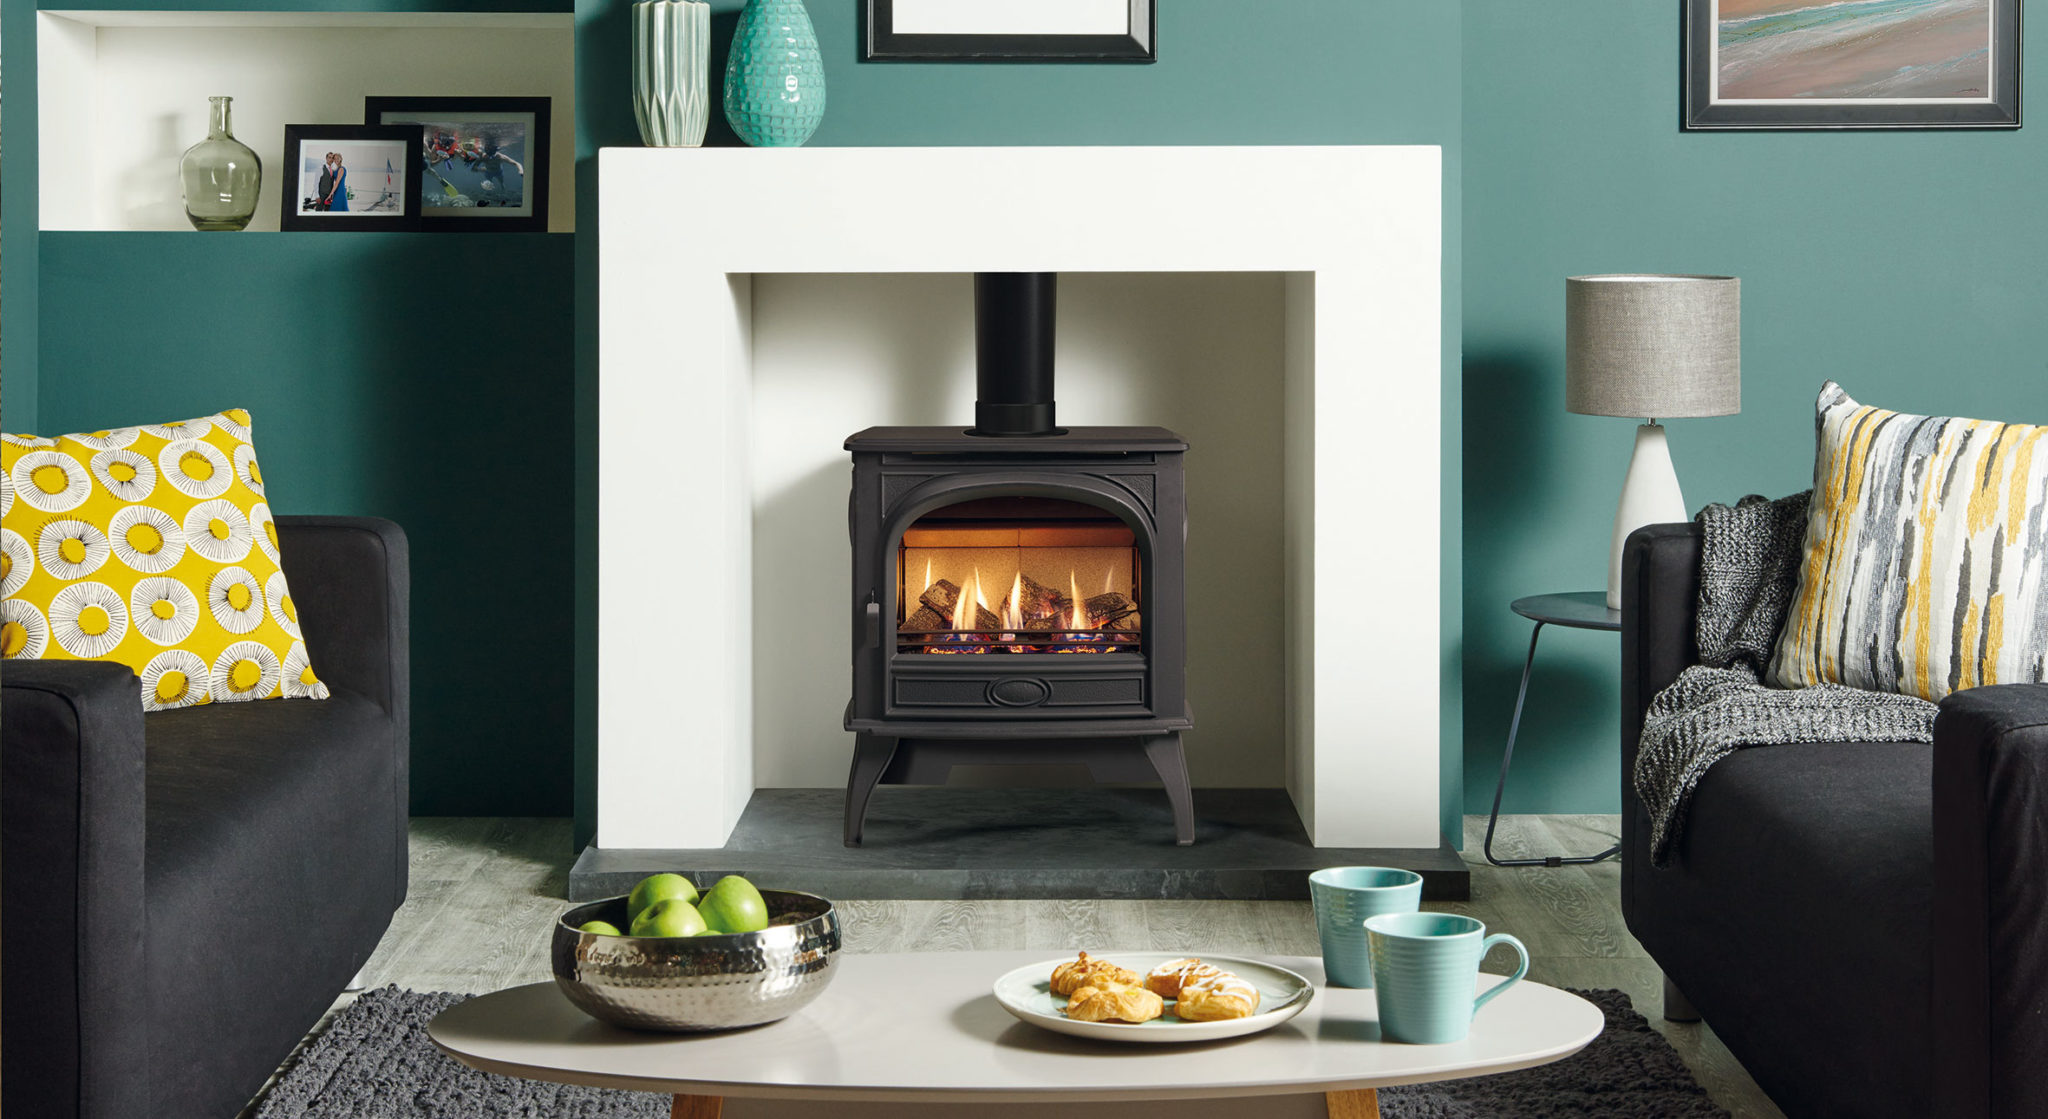 Dovre Gas Stoves Provide Style and Substance for Your Home